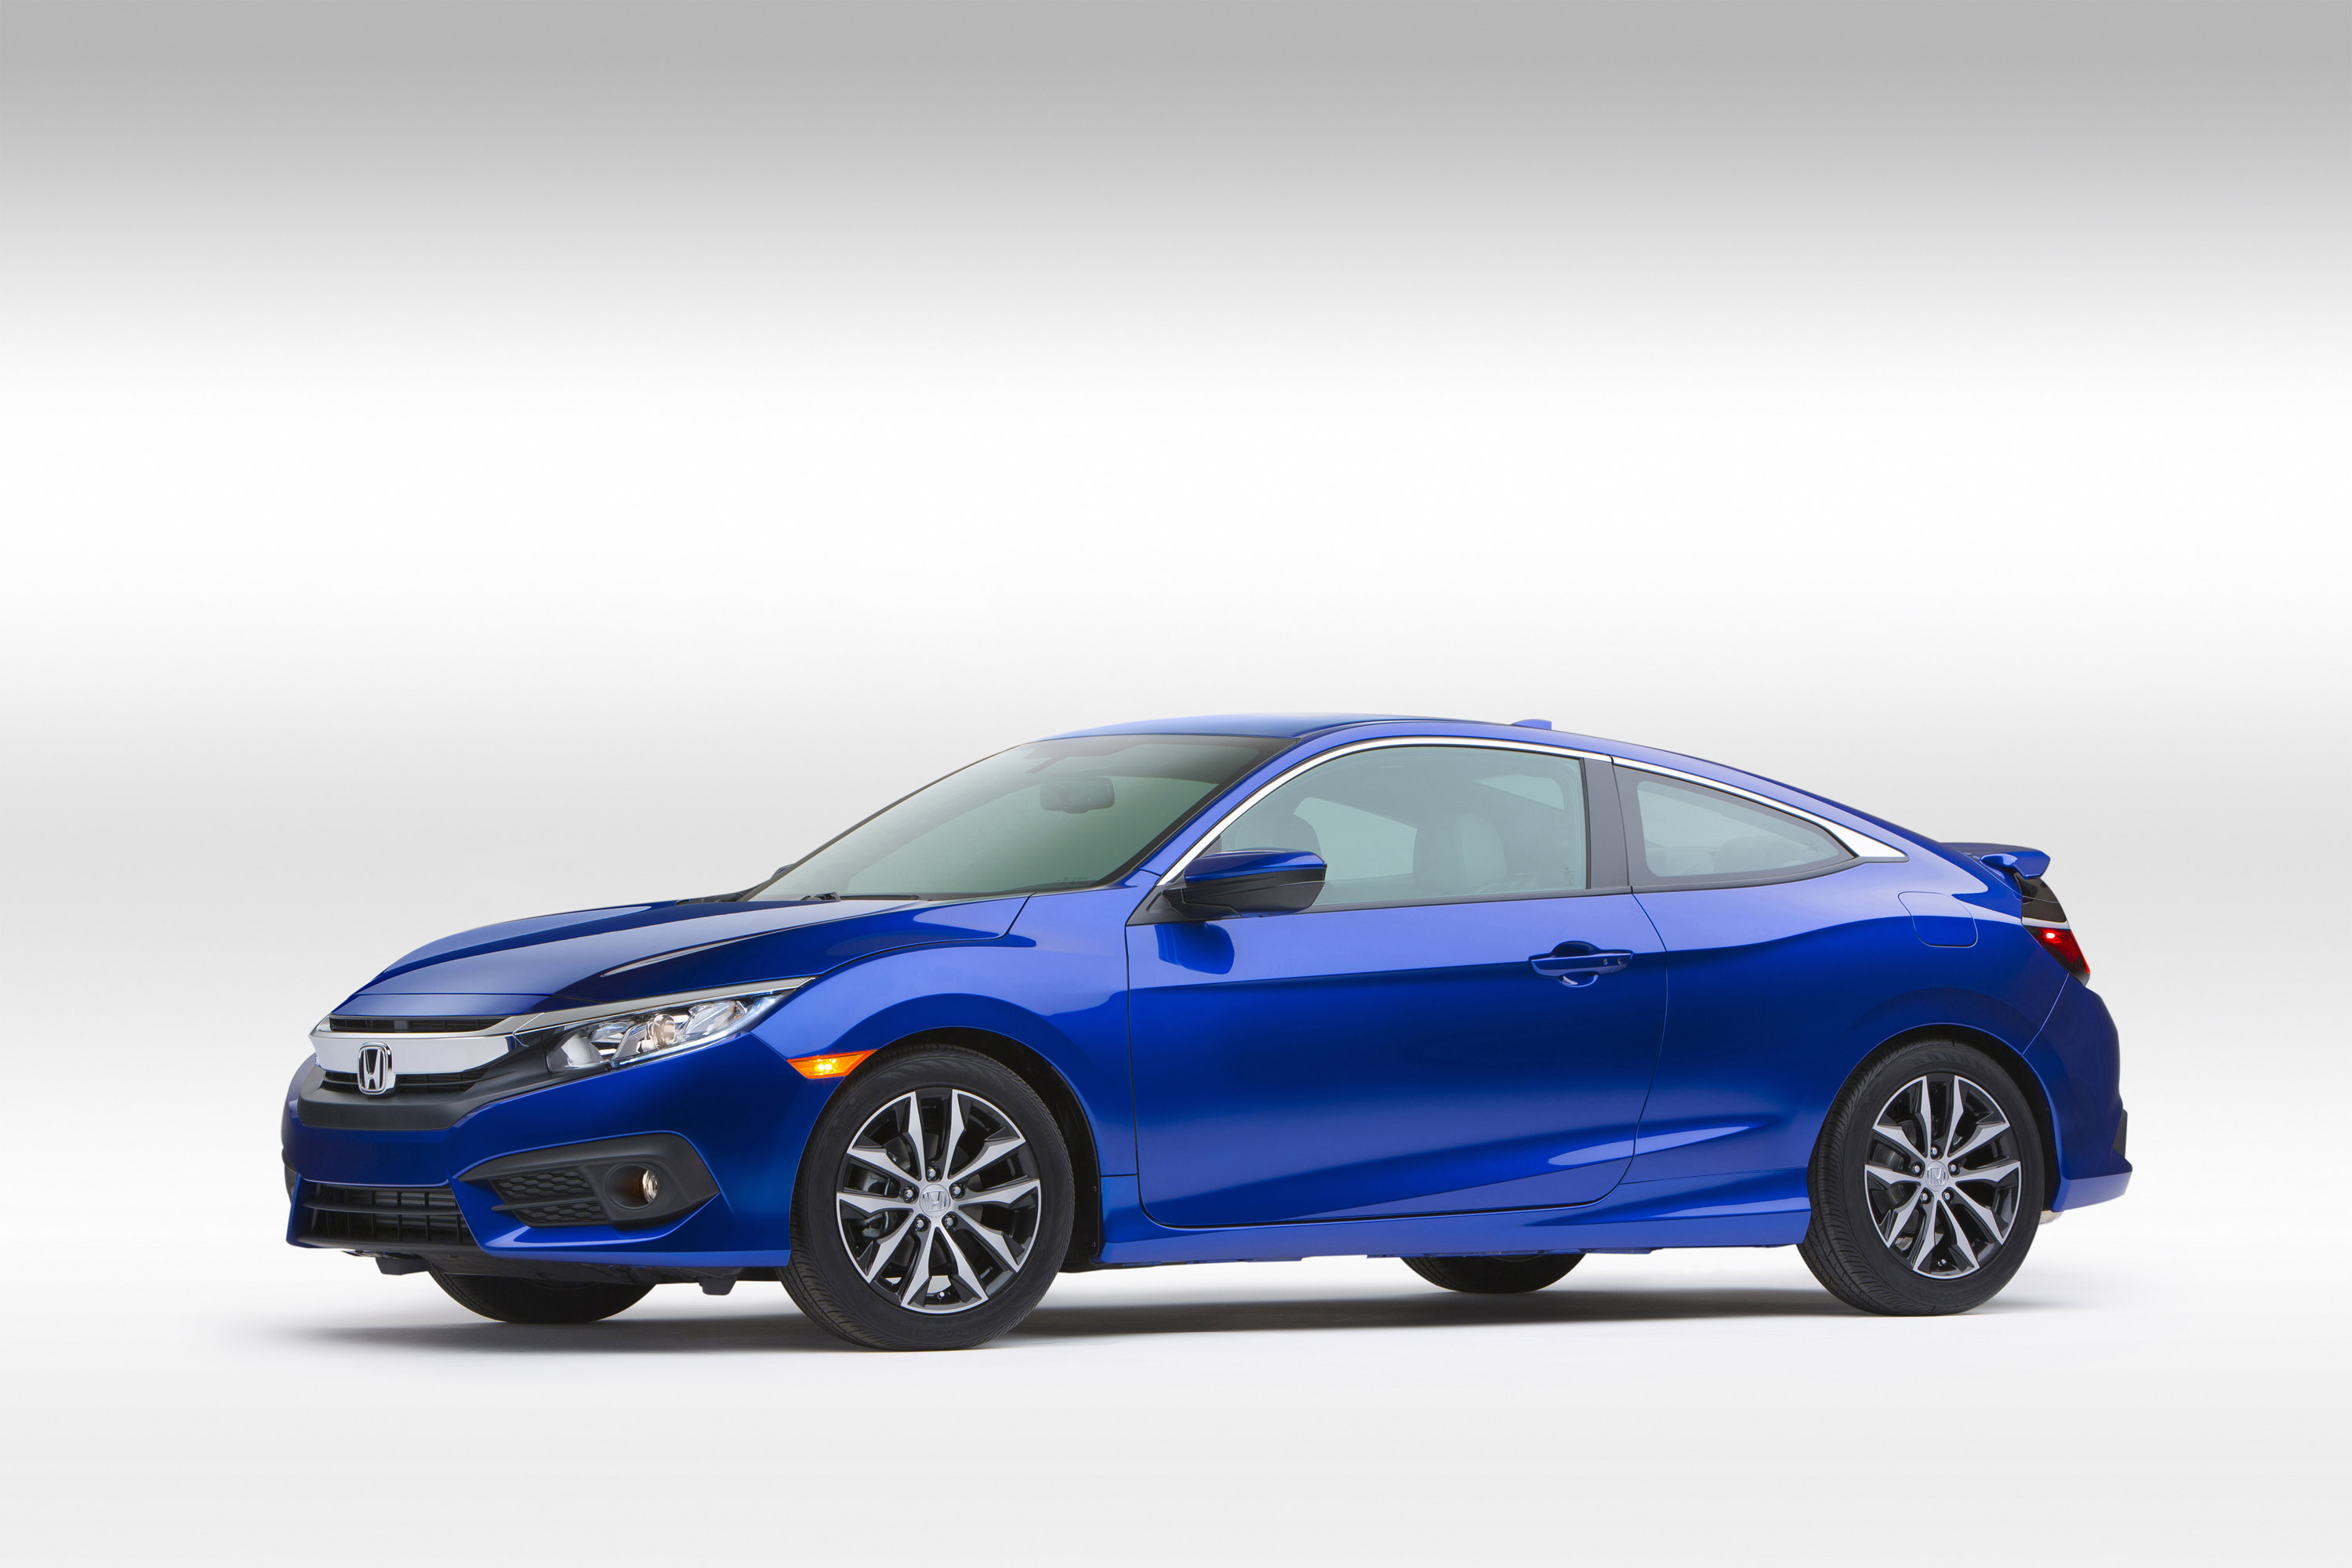 2016 honda civic coupe earns top safety pick award by iihs for Honda civic safety